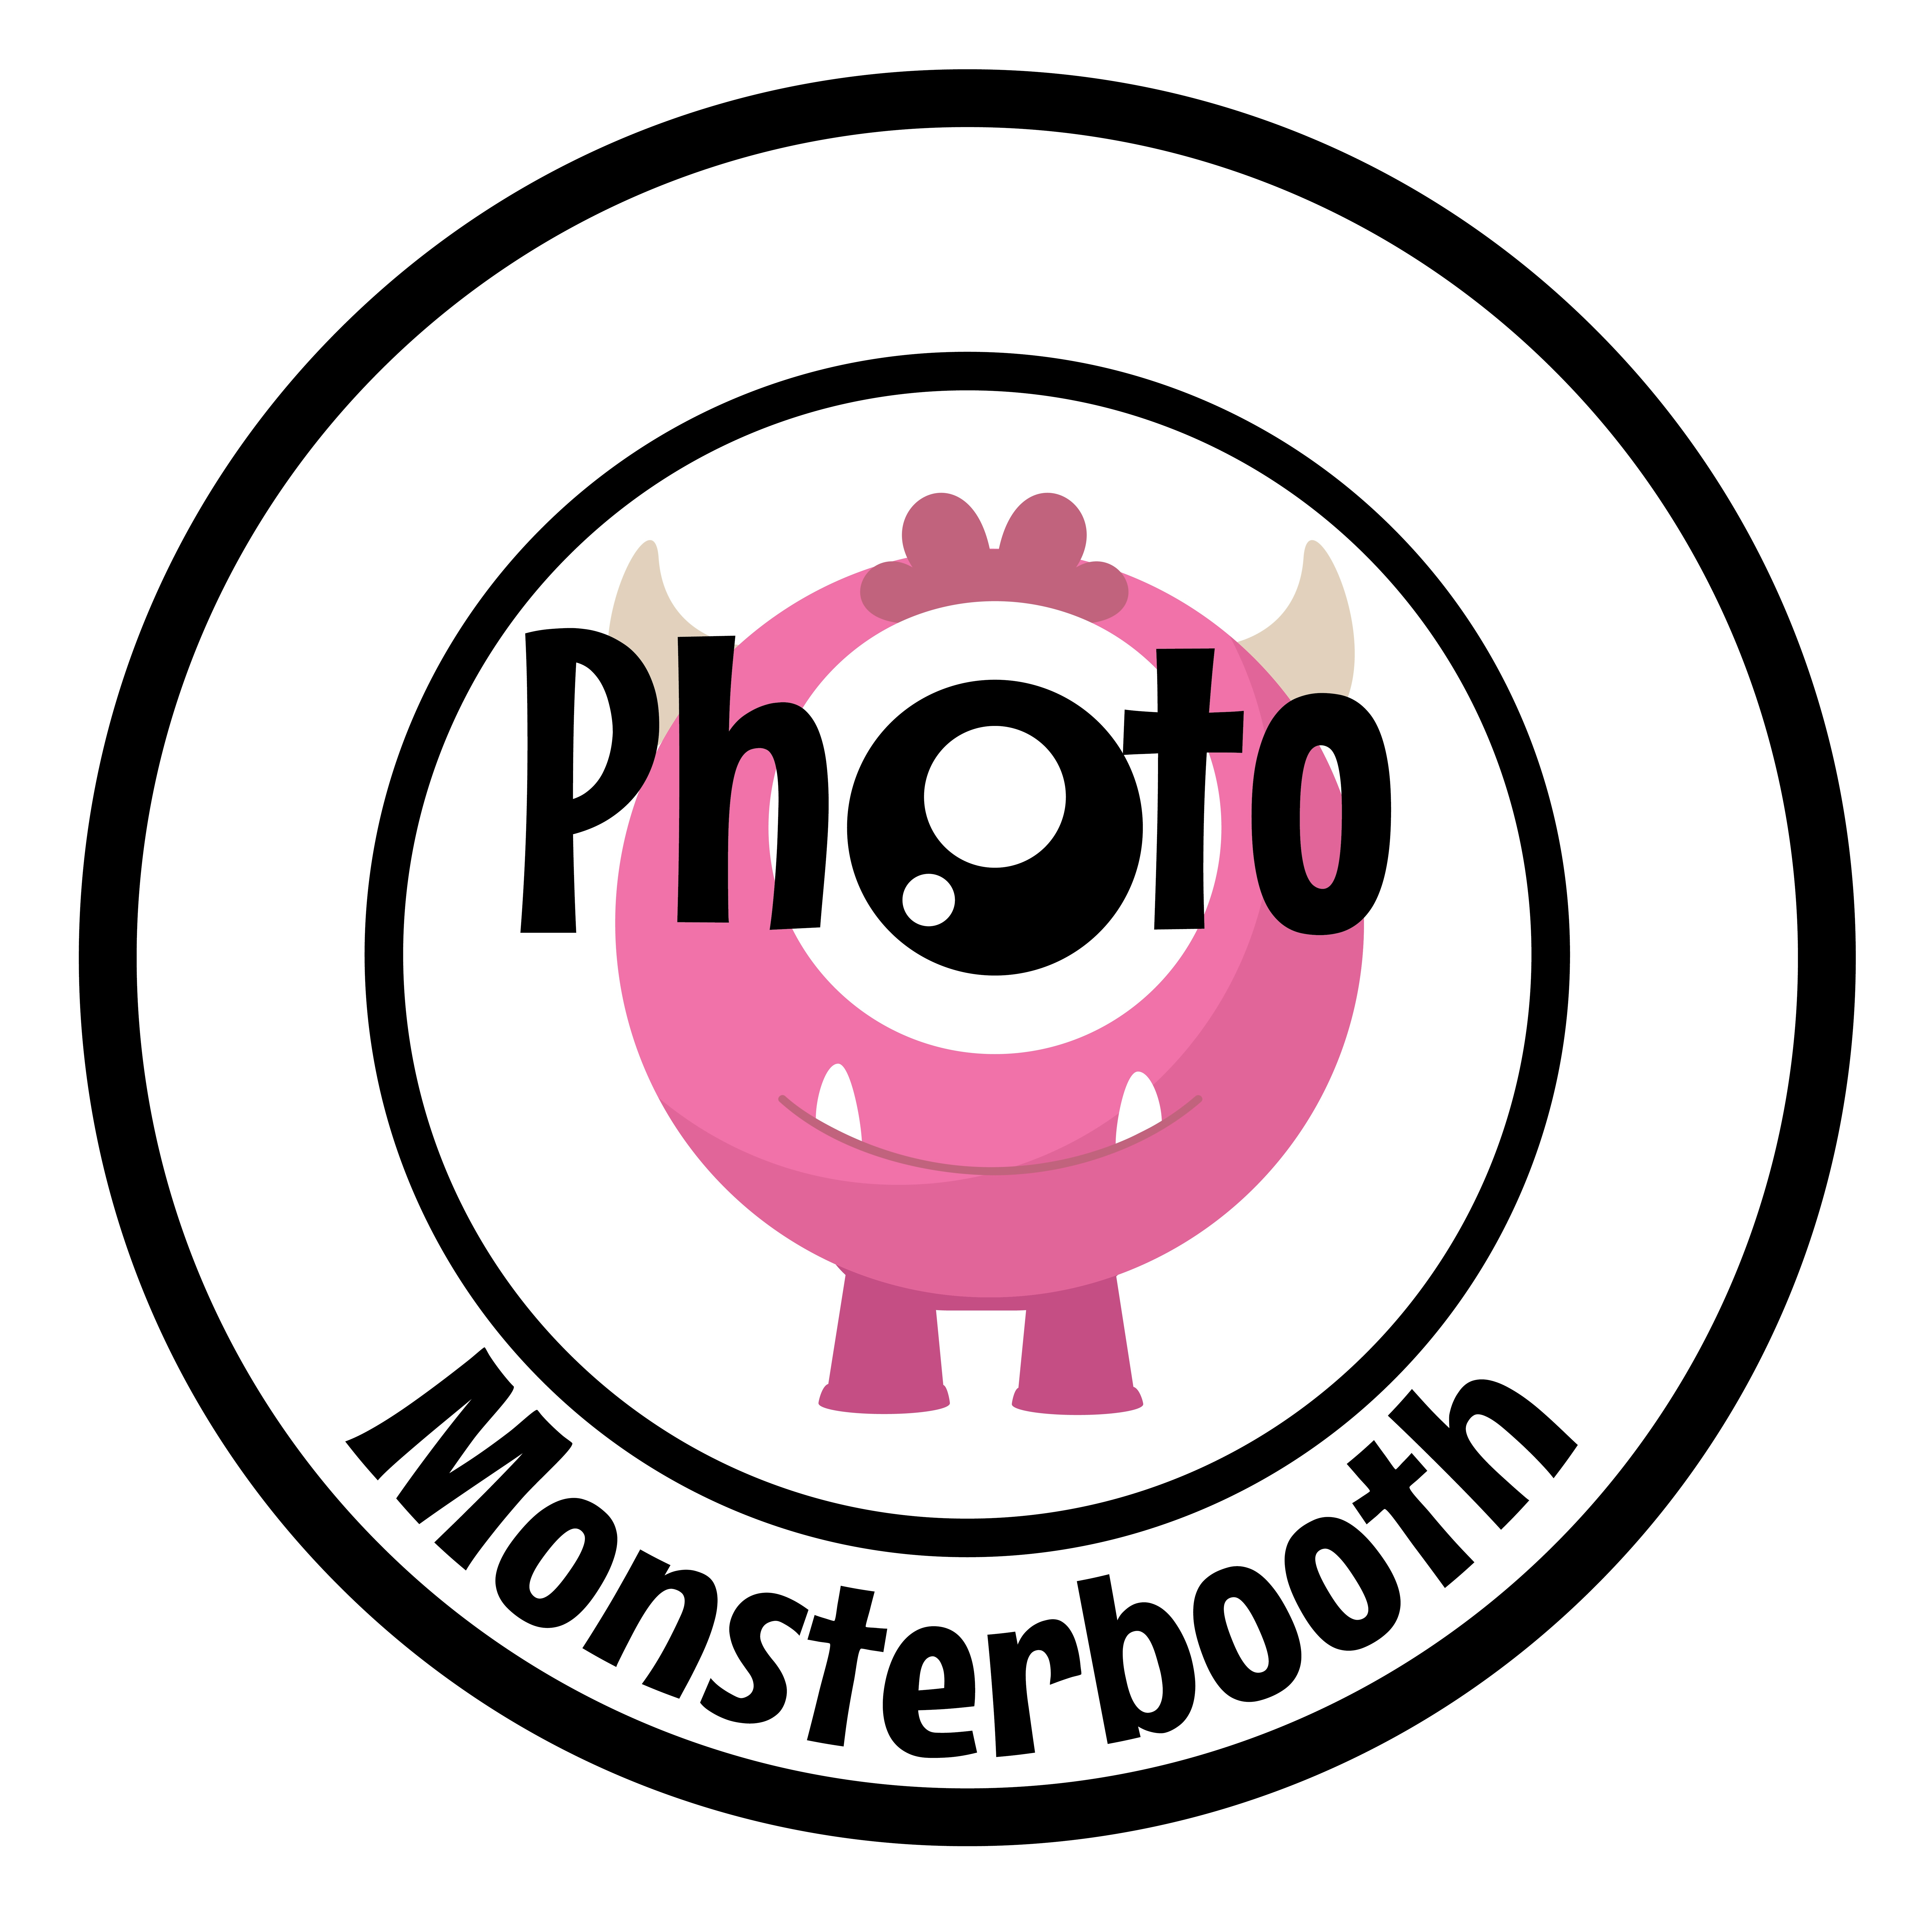 Monster photobooth